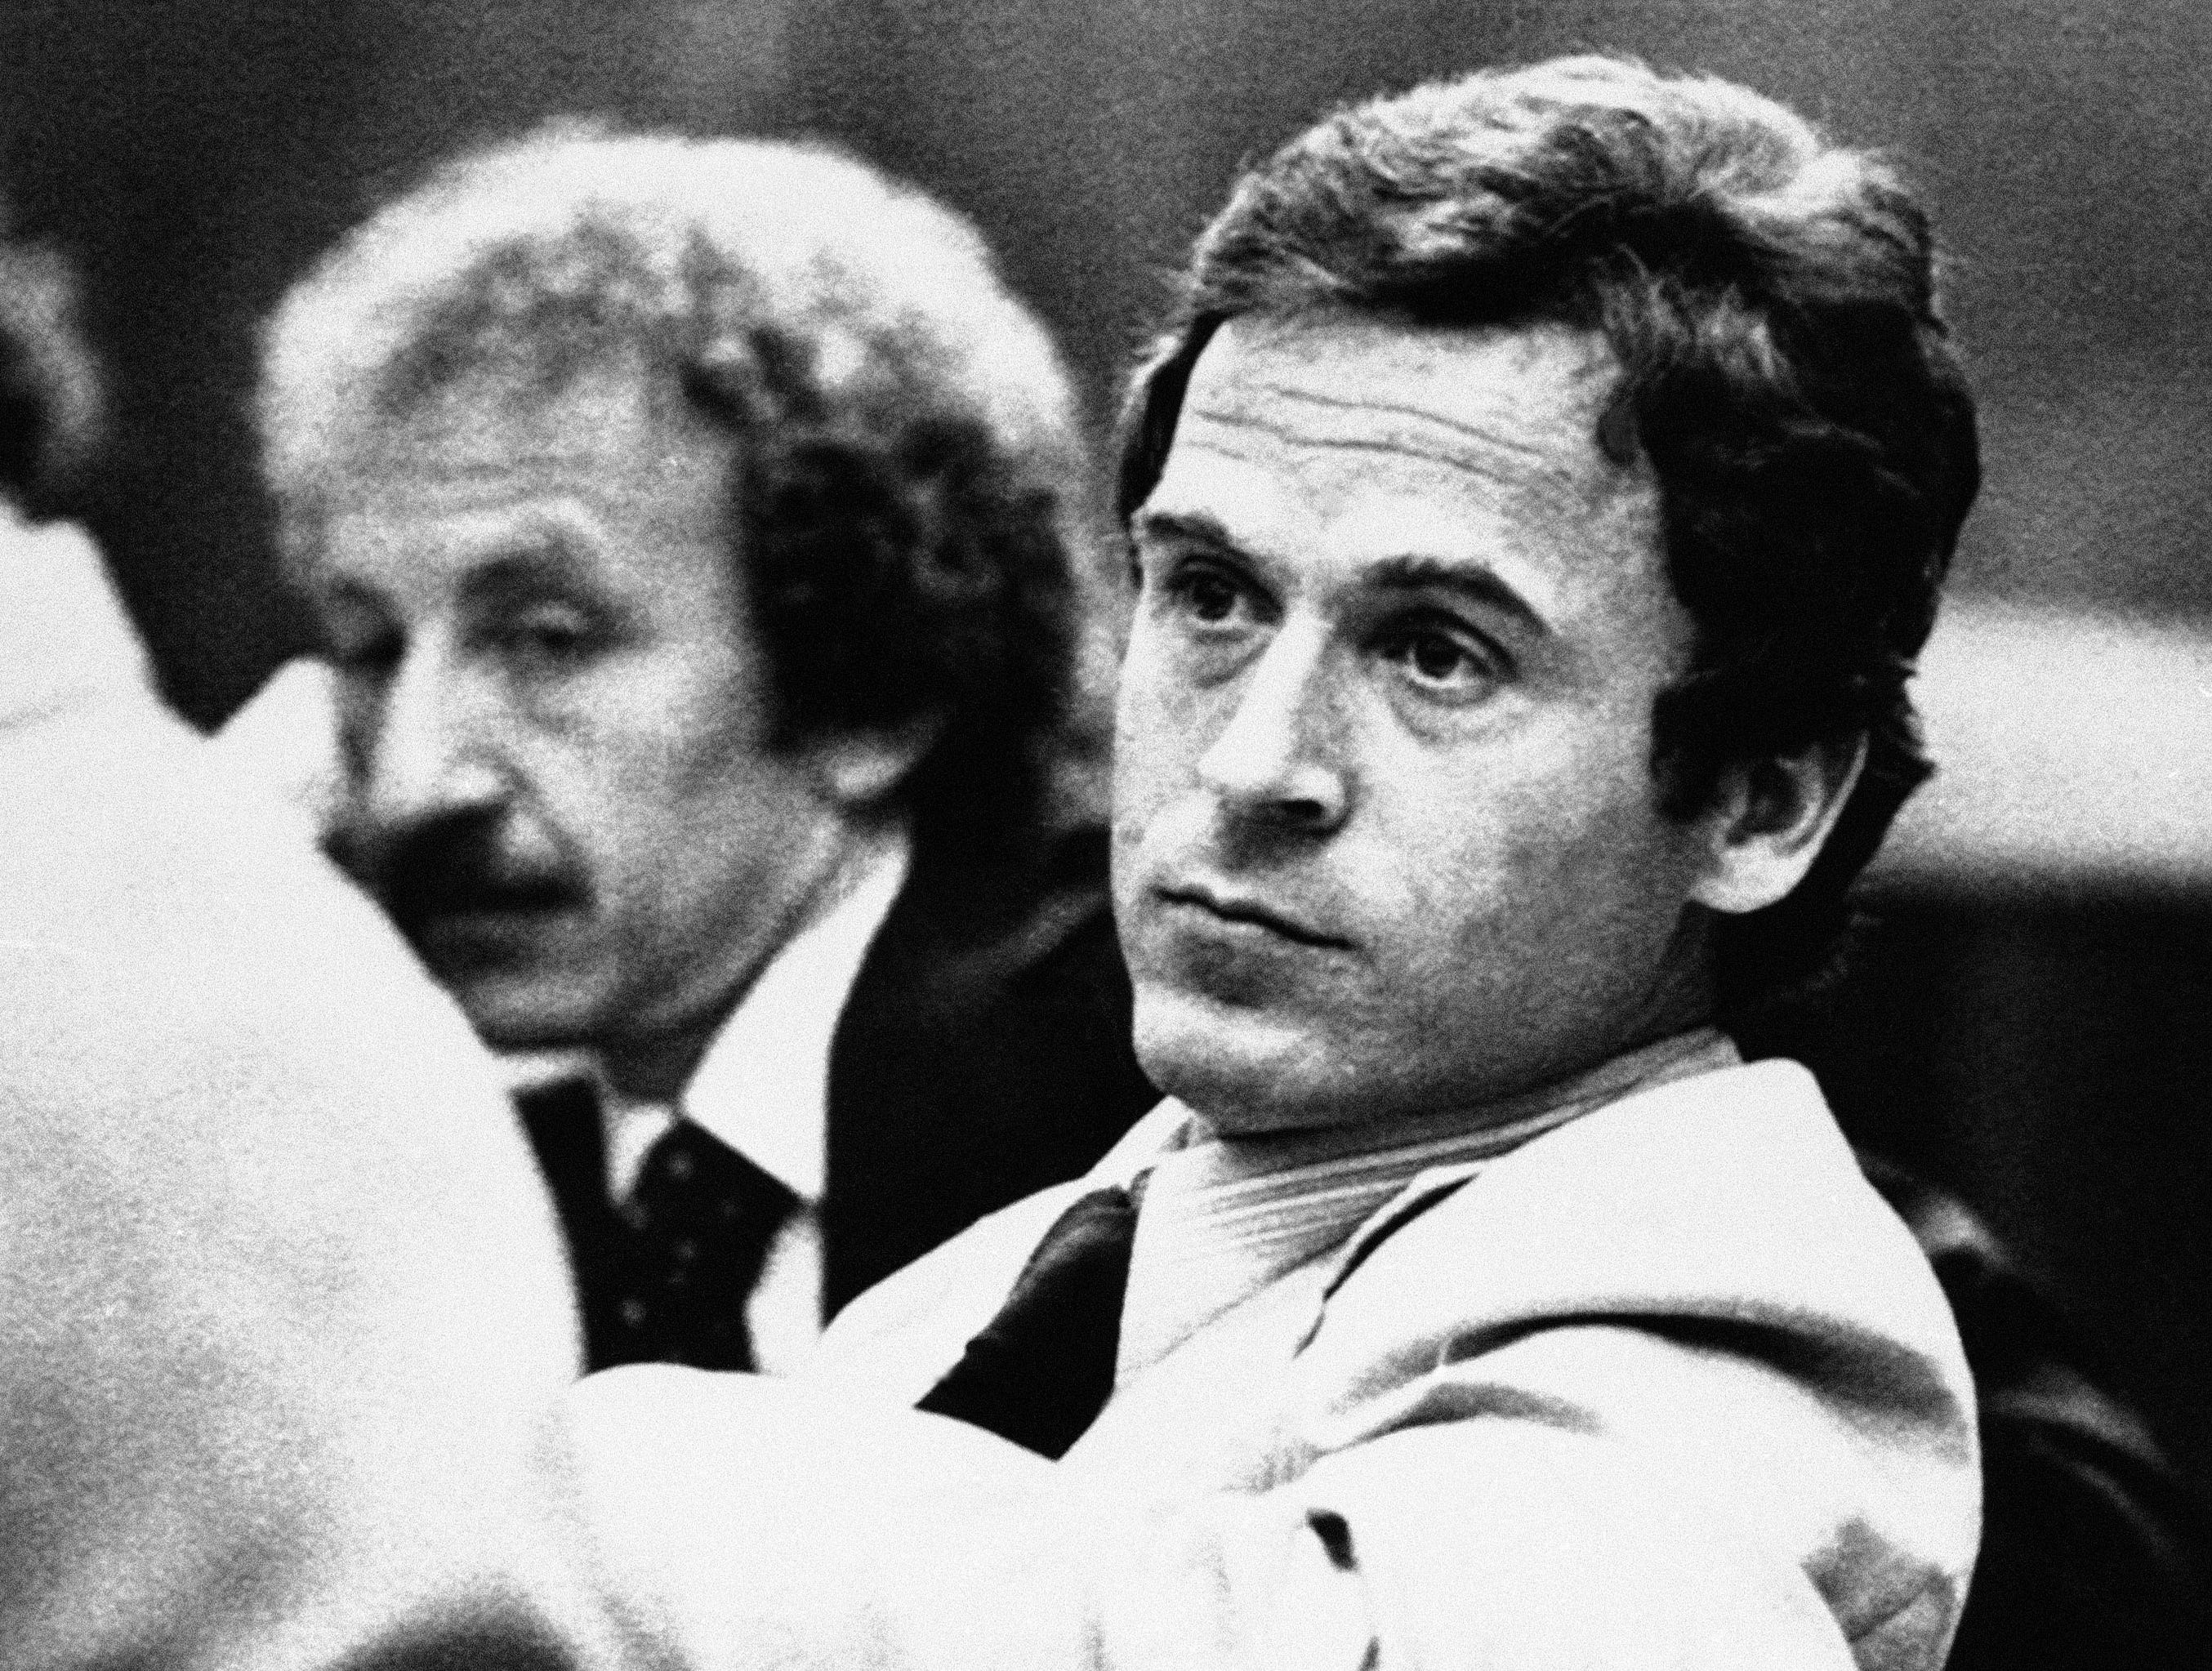 Ted Bundy leans back in his chair in the courtroom before his trial in Tallahassee, Fla. One of the most notorious serial killers in American history, Bundy is believed to have killed at least 30 young women across the United States in the 1970s. Bundy was one of the hundreds of fugitives who have appeared on the FBI's Ten Most Wanted Fugitives list.